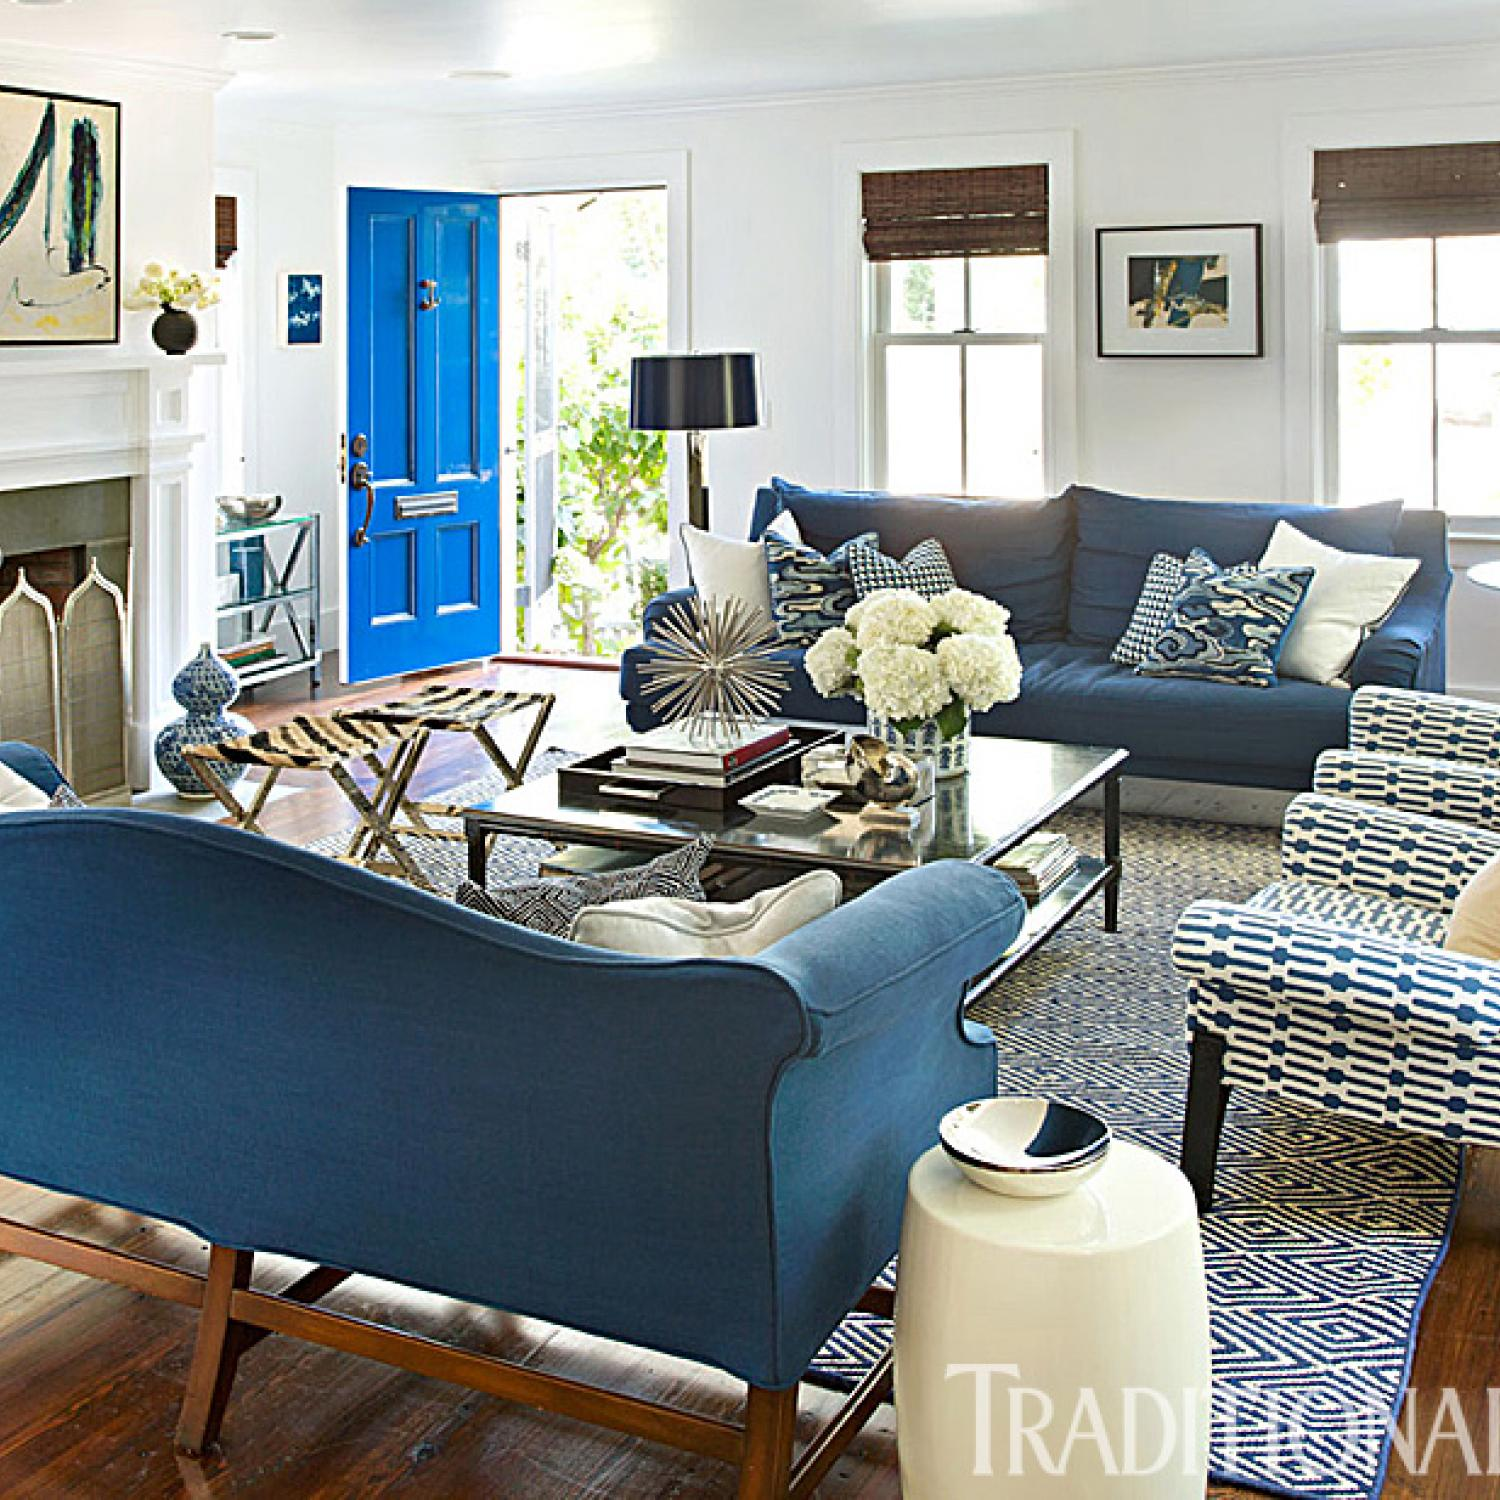 Interior Furniture Design For Living Room ~ Furniture arranging dos and don ts traditional home